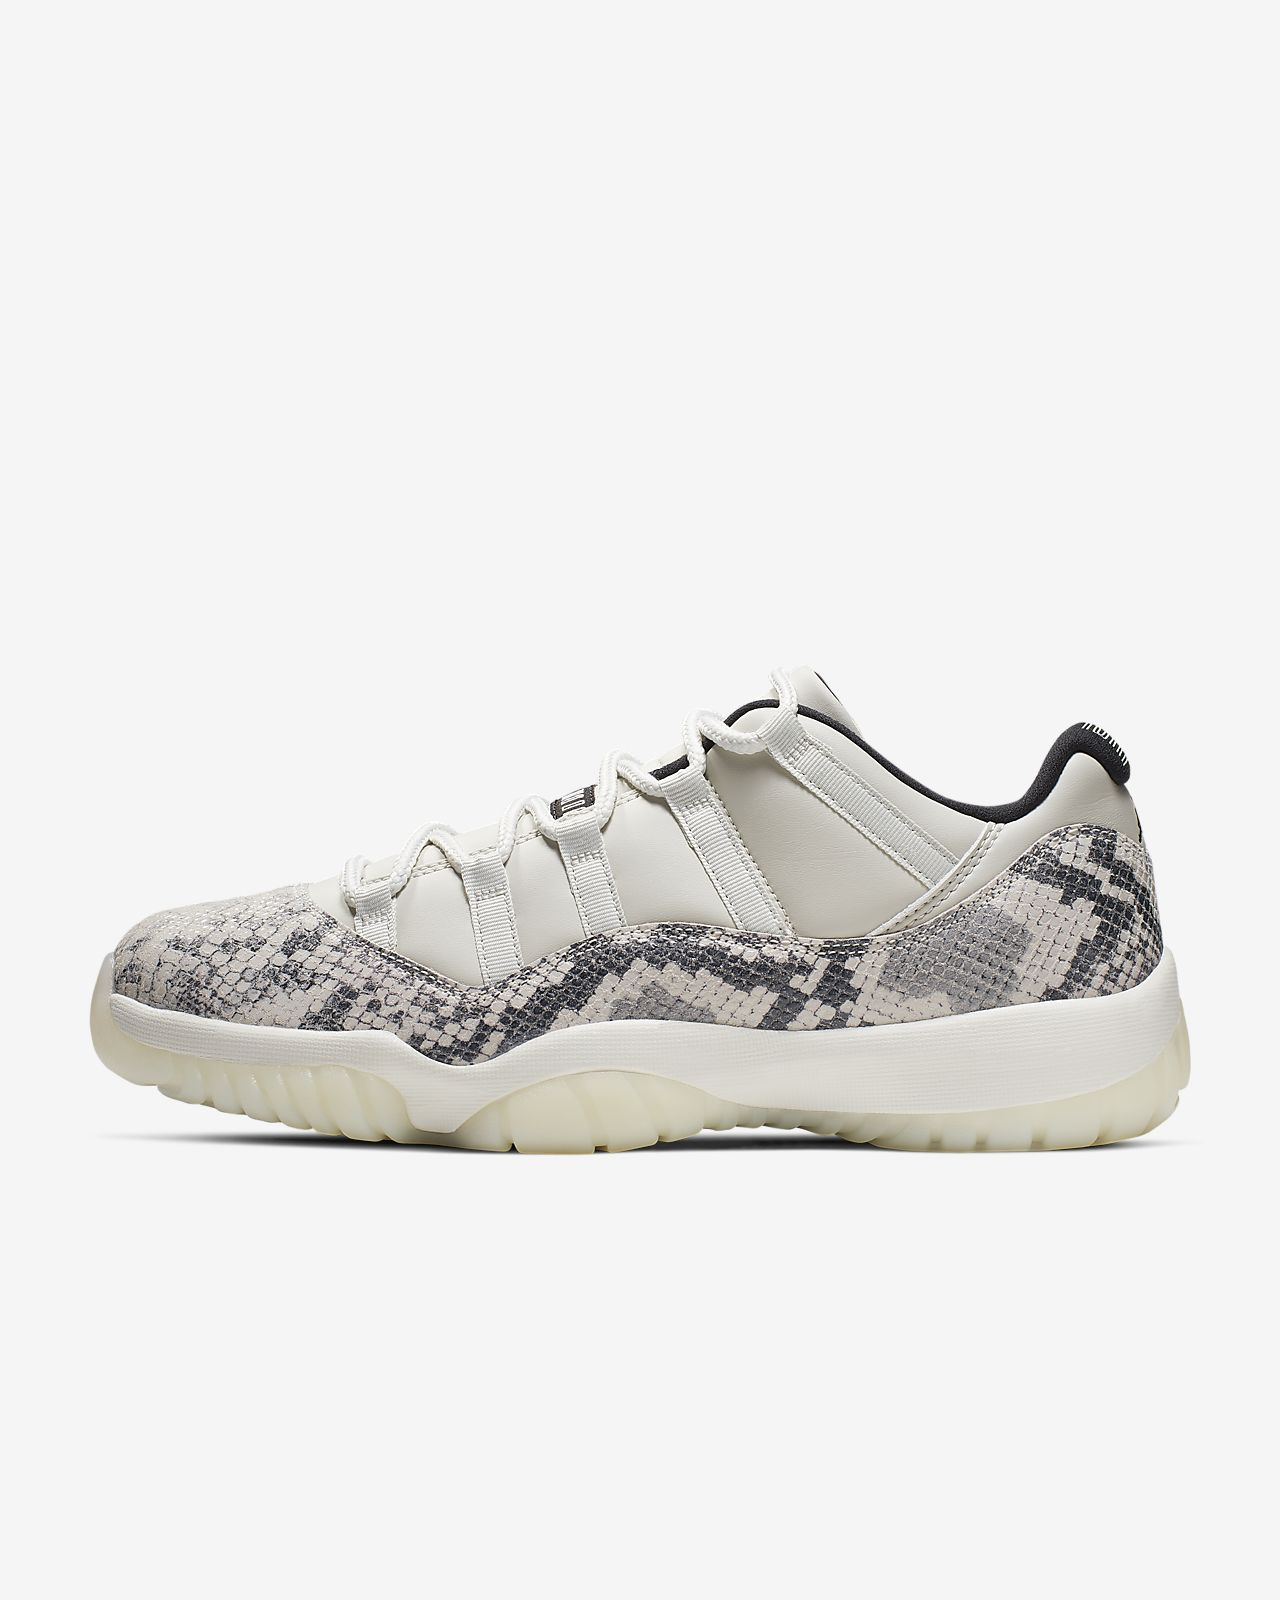 save off d15db 5a0e8 Air Jordan 11 Retro Low LE